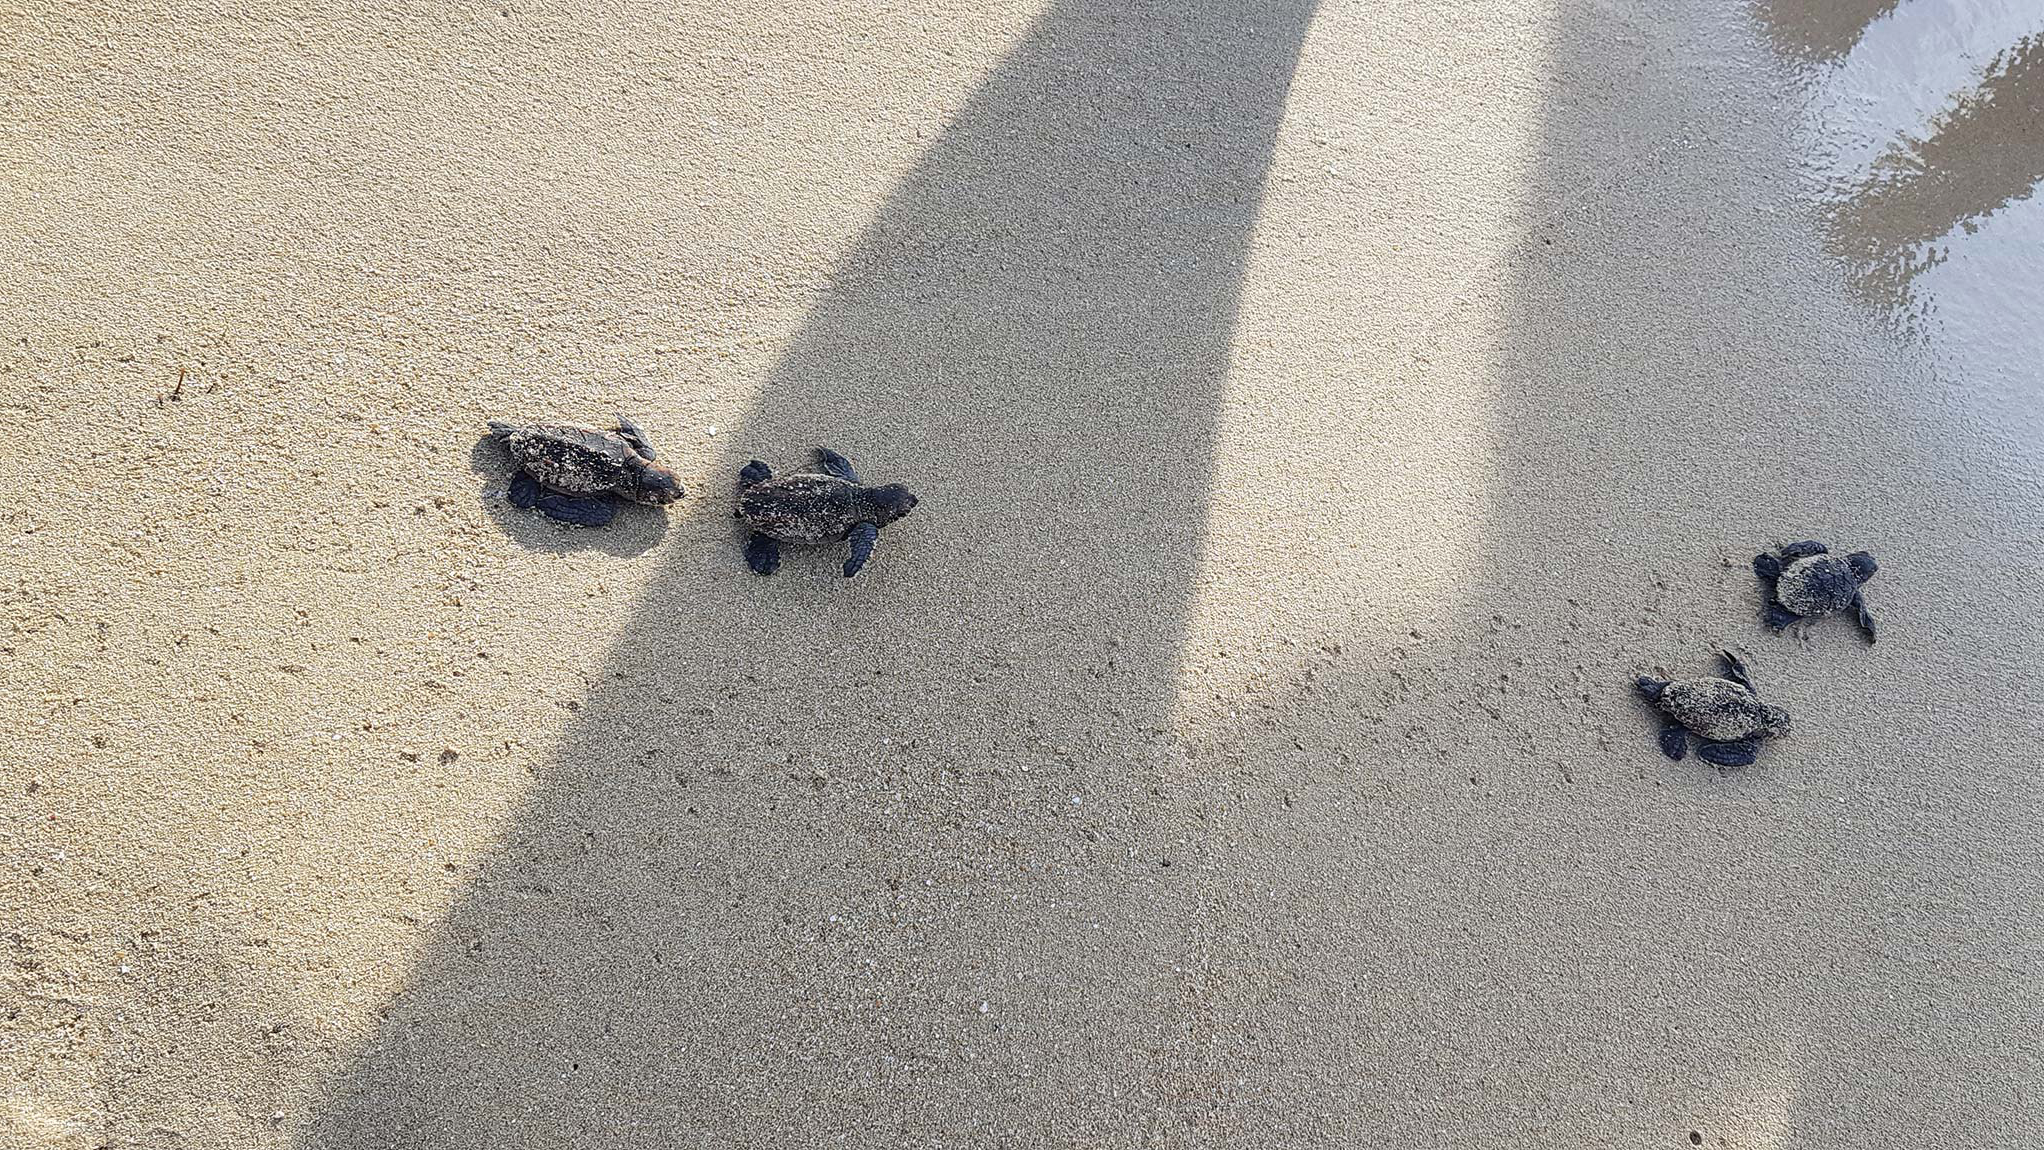 Newly hatched hawksbill turtles make their way to the sea